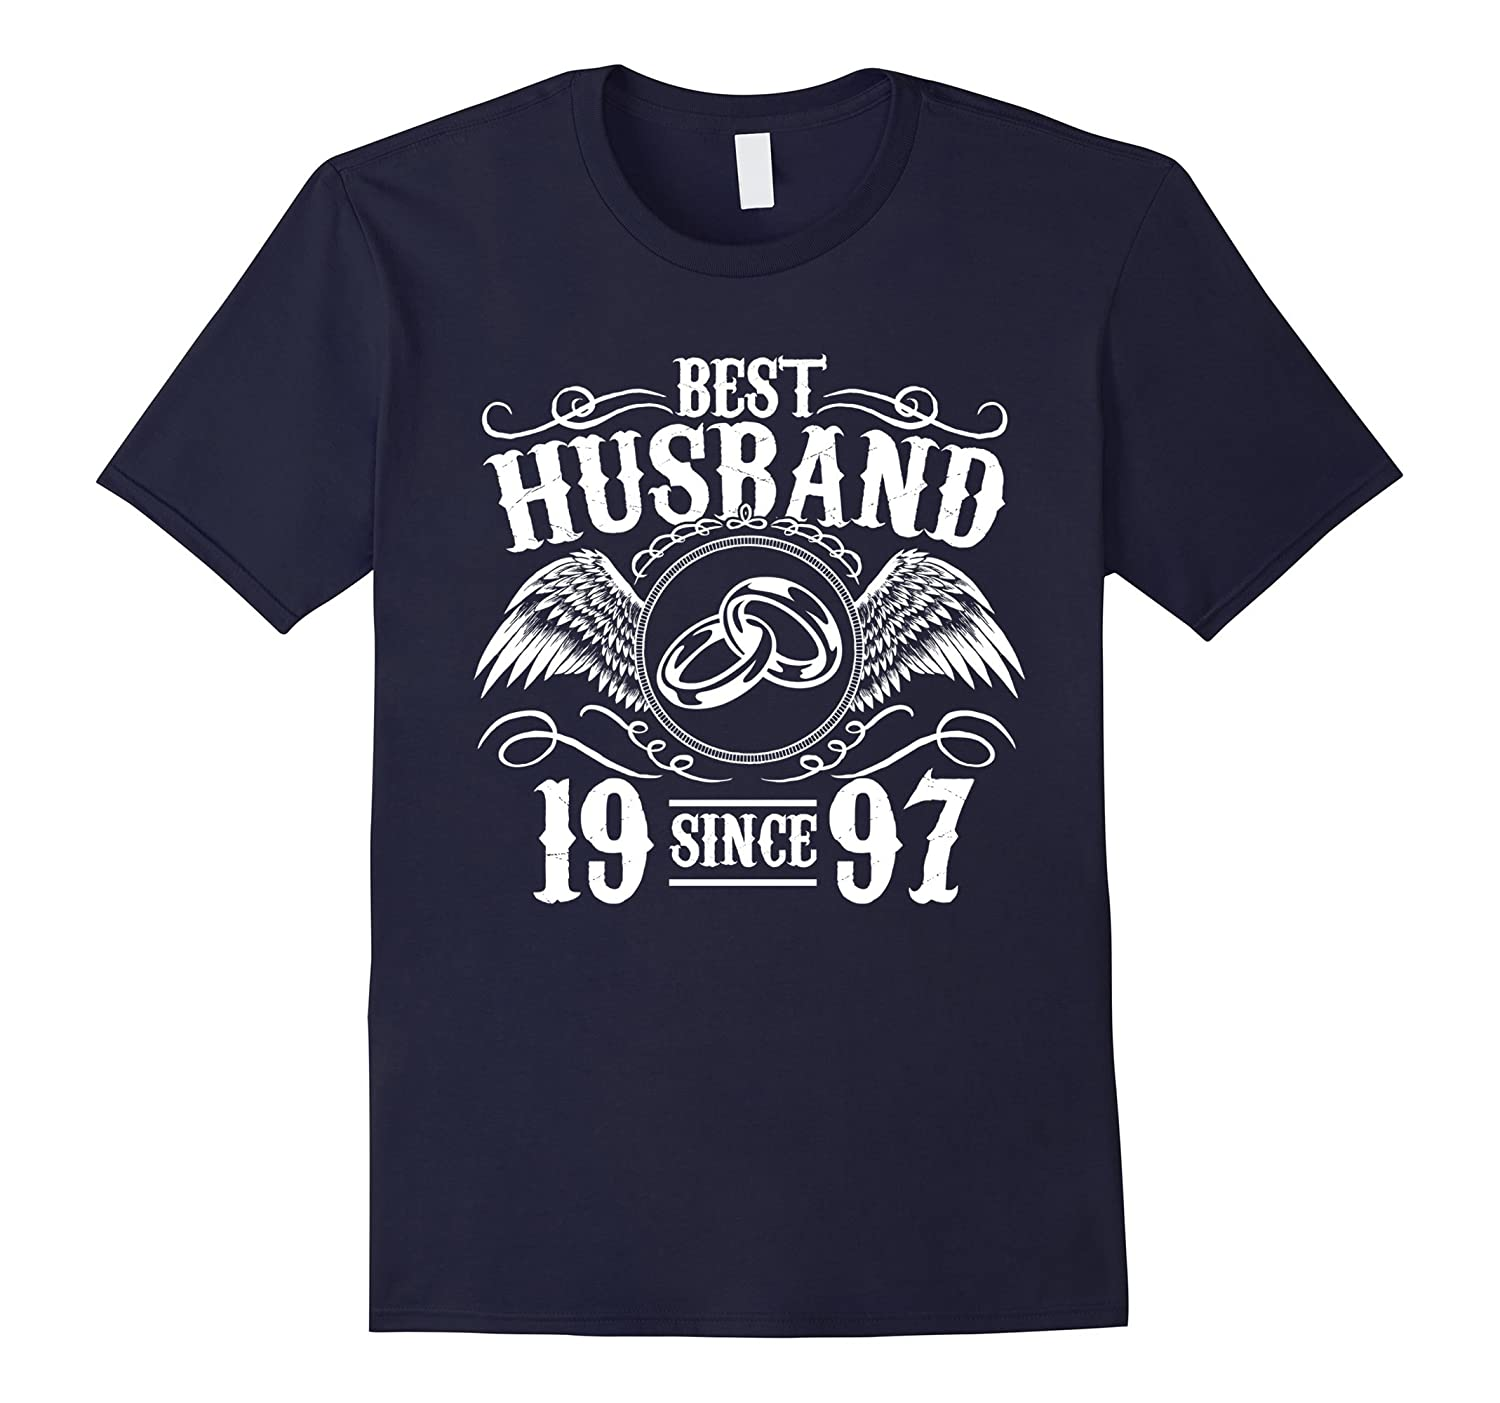 Great T-Shirt For Husband. 20th Wedding Anniversary Gift .-T-Shirt